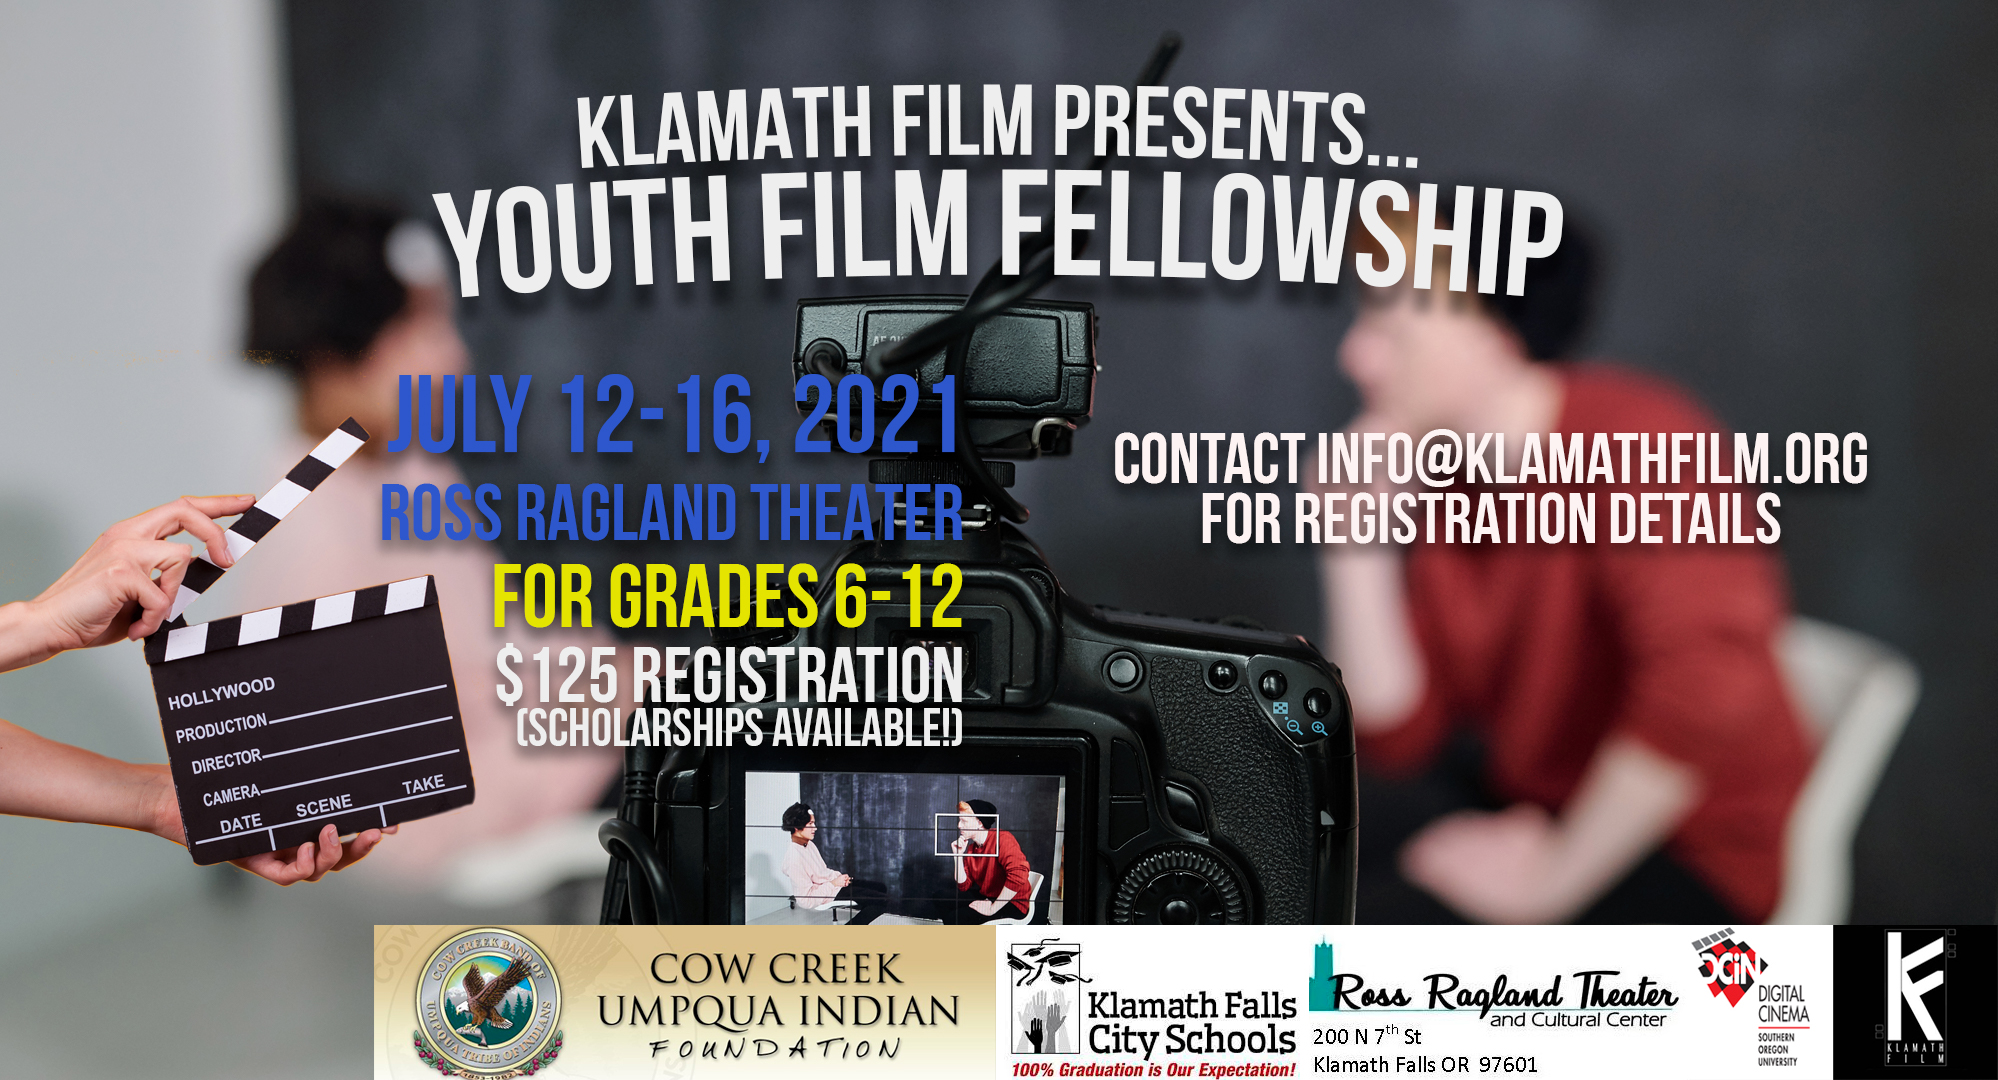 Klamath Film partners with KFCSD, SOU for second Youth Film Fellowship